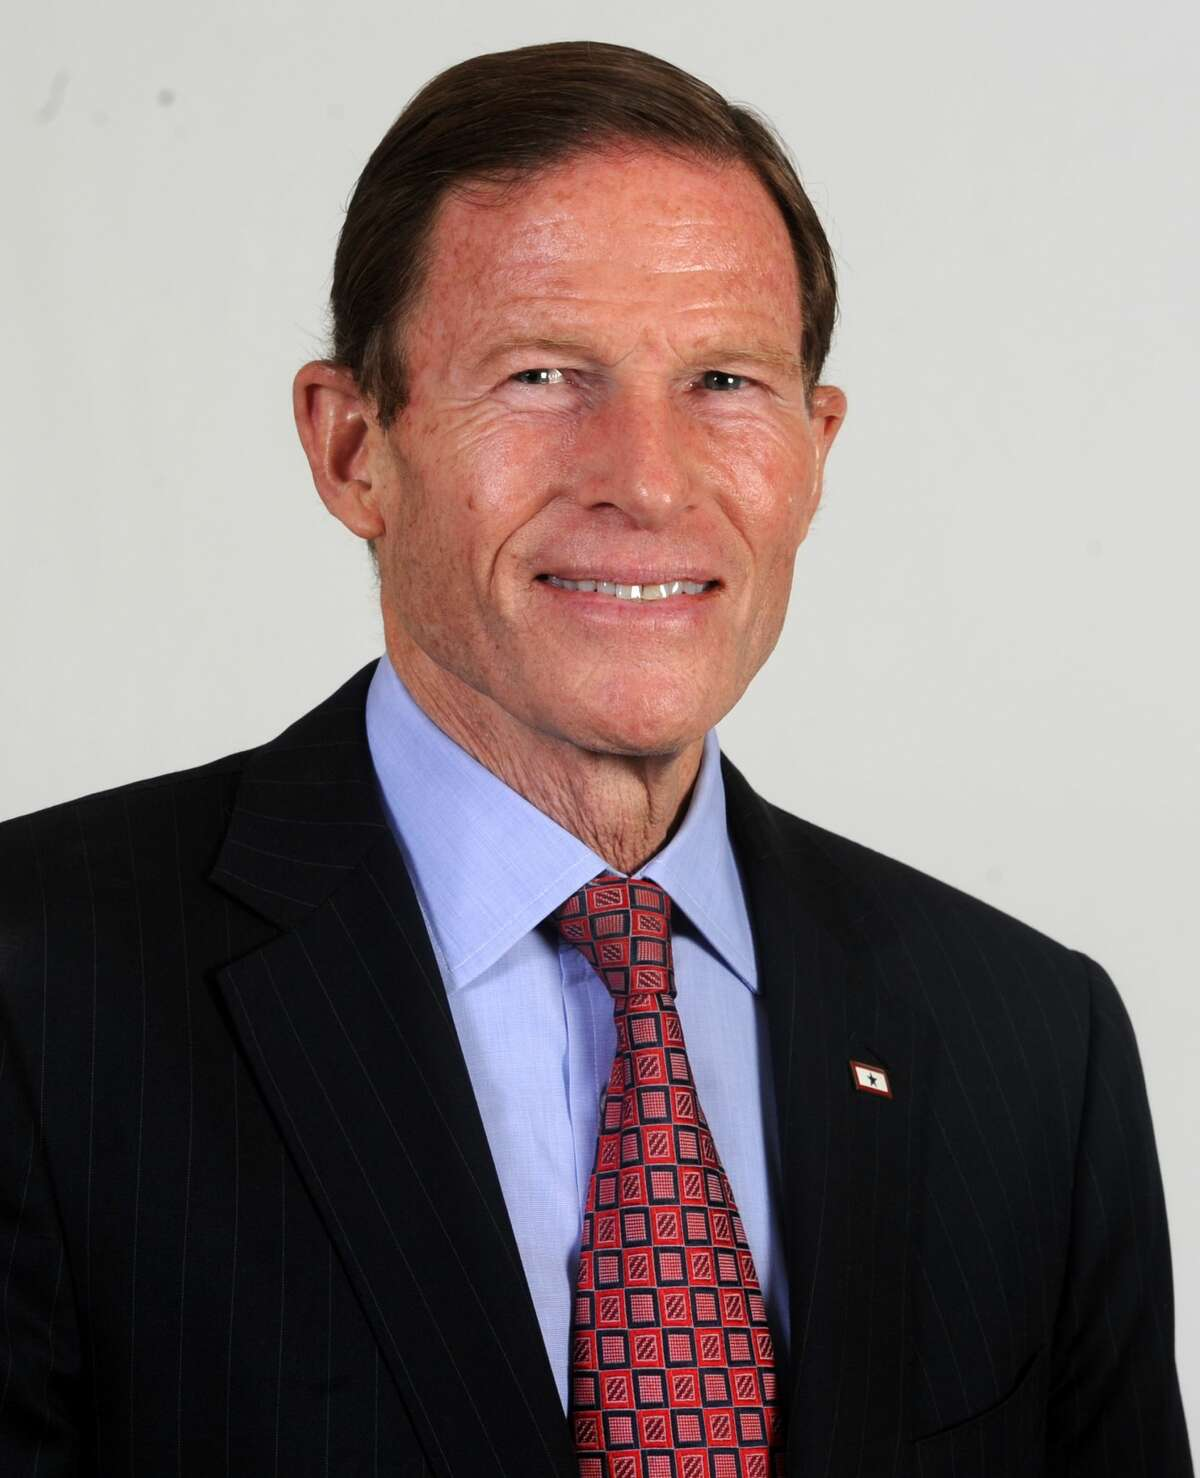 Endorsement: Blumenthal has earned a second term in Senate U.S. Sen. Richard Blumenthal, D-Conn., winding down an impressive first term in Washington, deserves to return.While his interests are widespread, the senator has kept his focus - and his not inconsiderable muscle - on the big issues, including, but not limited to, gun safety, rail safety and fighting for the middle class and consumers by continuing the work he began as attorney general in Connecticut.Read the full endorsement here.